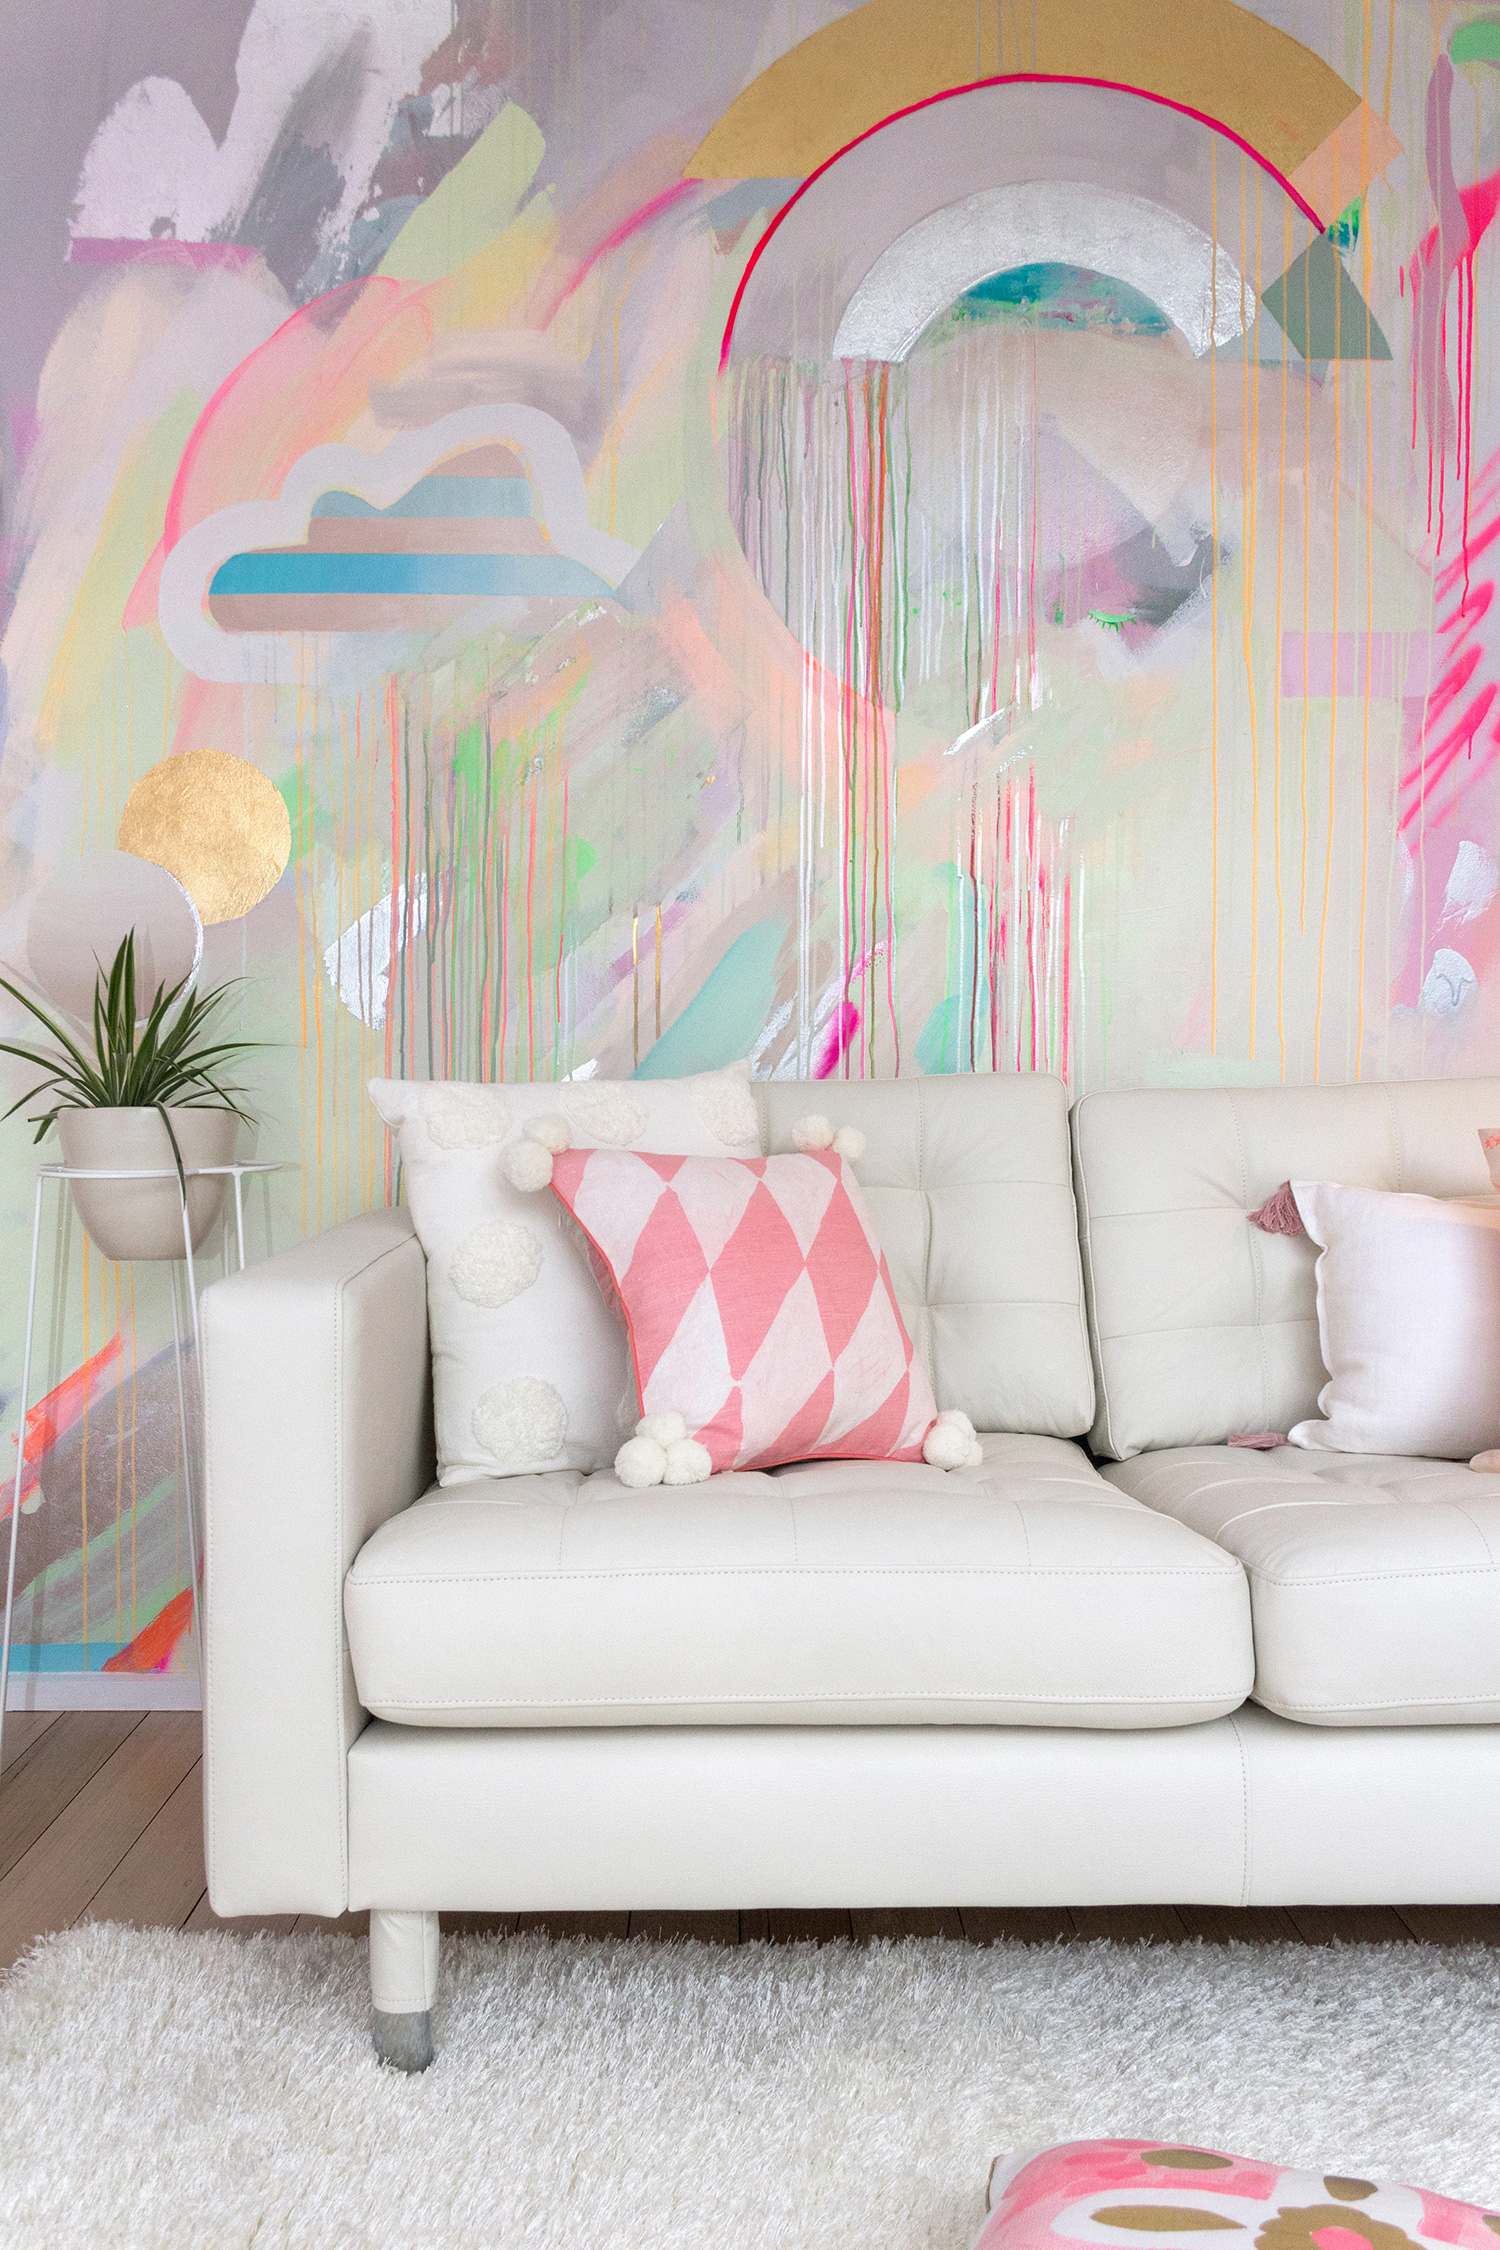 Vibrant galaxy wall mural in bright neon colours, featuring gold leaf shapes, metallic rainbow and striped cloud. Styled in front is a white leather couch and Bonnie and Neil cushions.